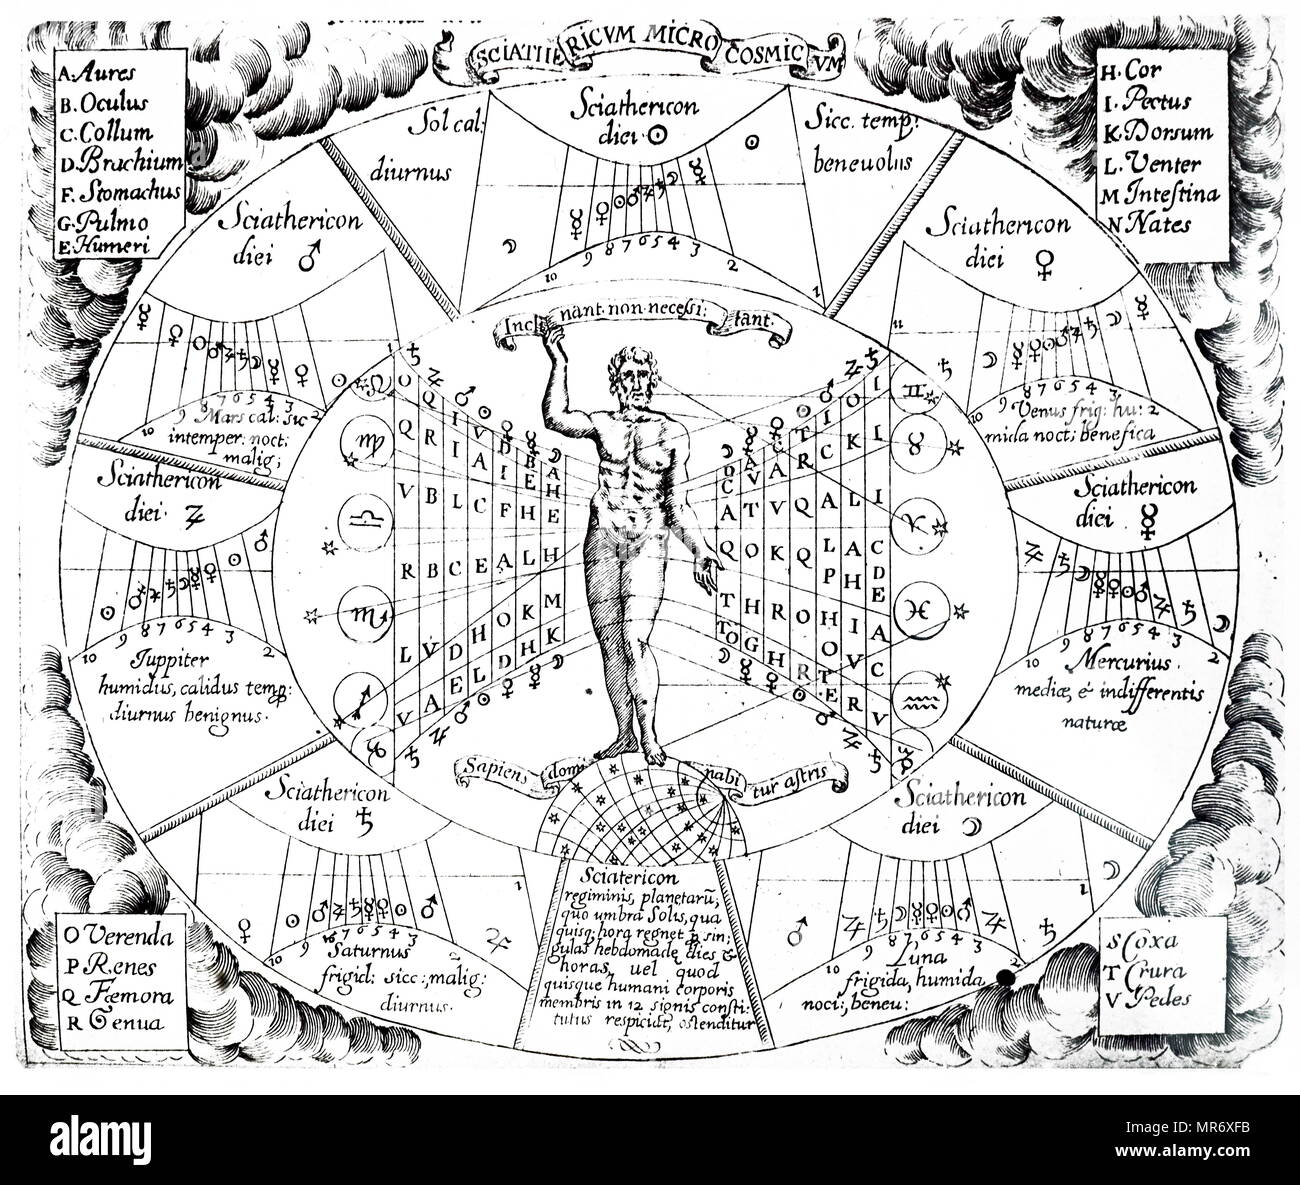 Astrological Chart Showing The Influences Of The Planets And